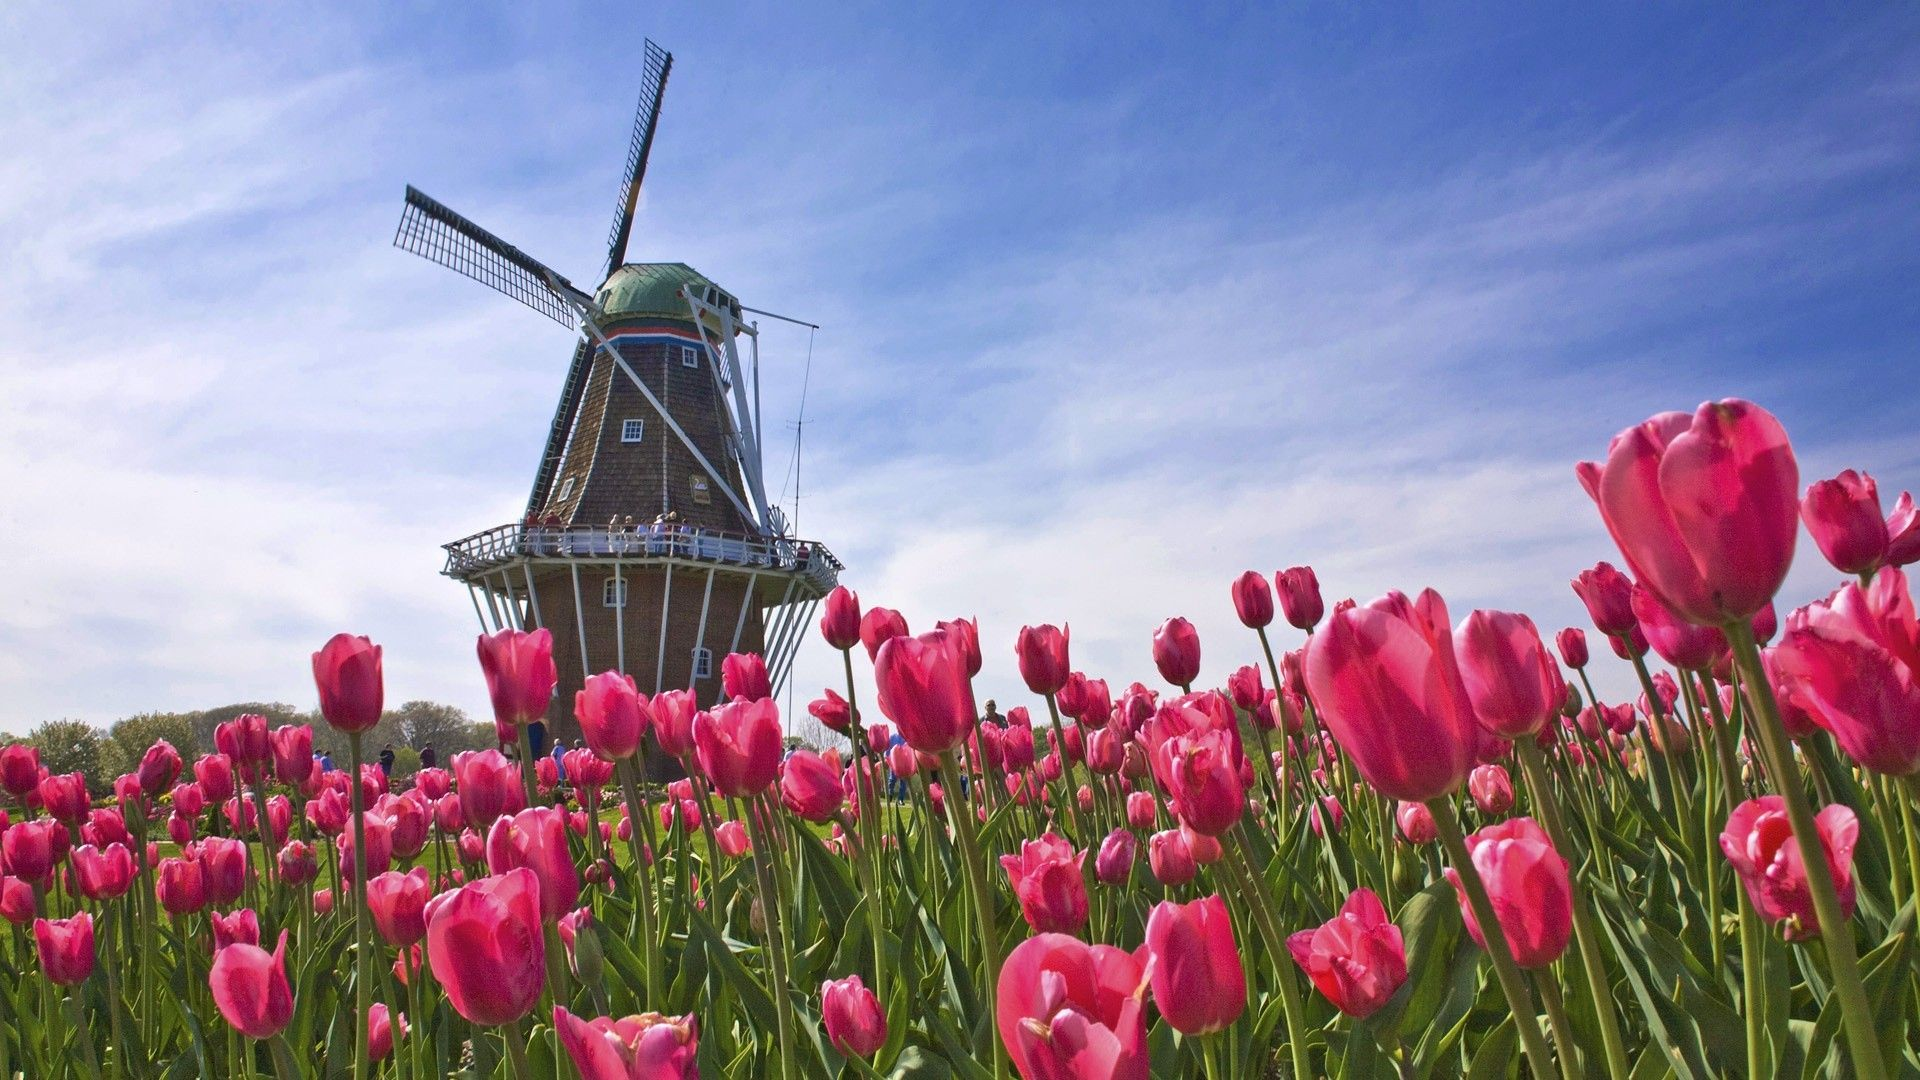 Landscapes Nature Tulips Windmills Pink Flowers 1920x1080 Nature Tulips Windmills Pink Flowers Via Www Allwal Field Wallpaper Flower Wallpaper Windmill